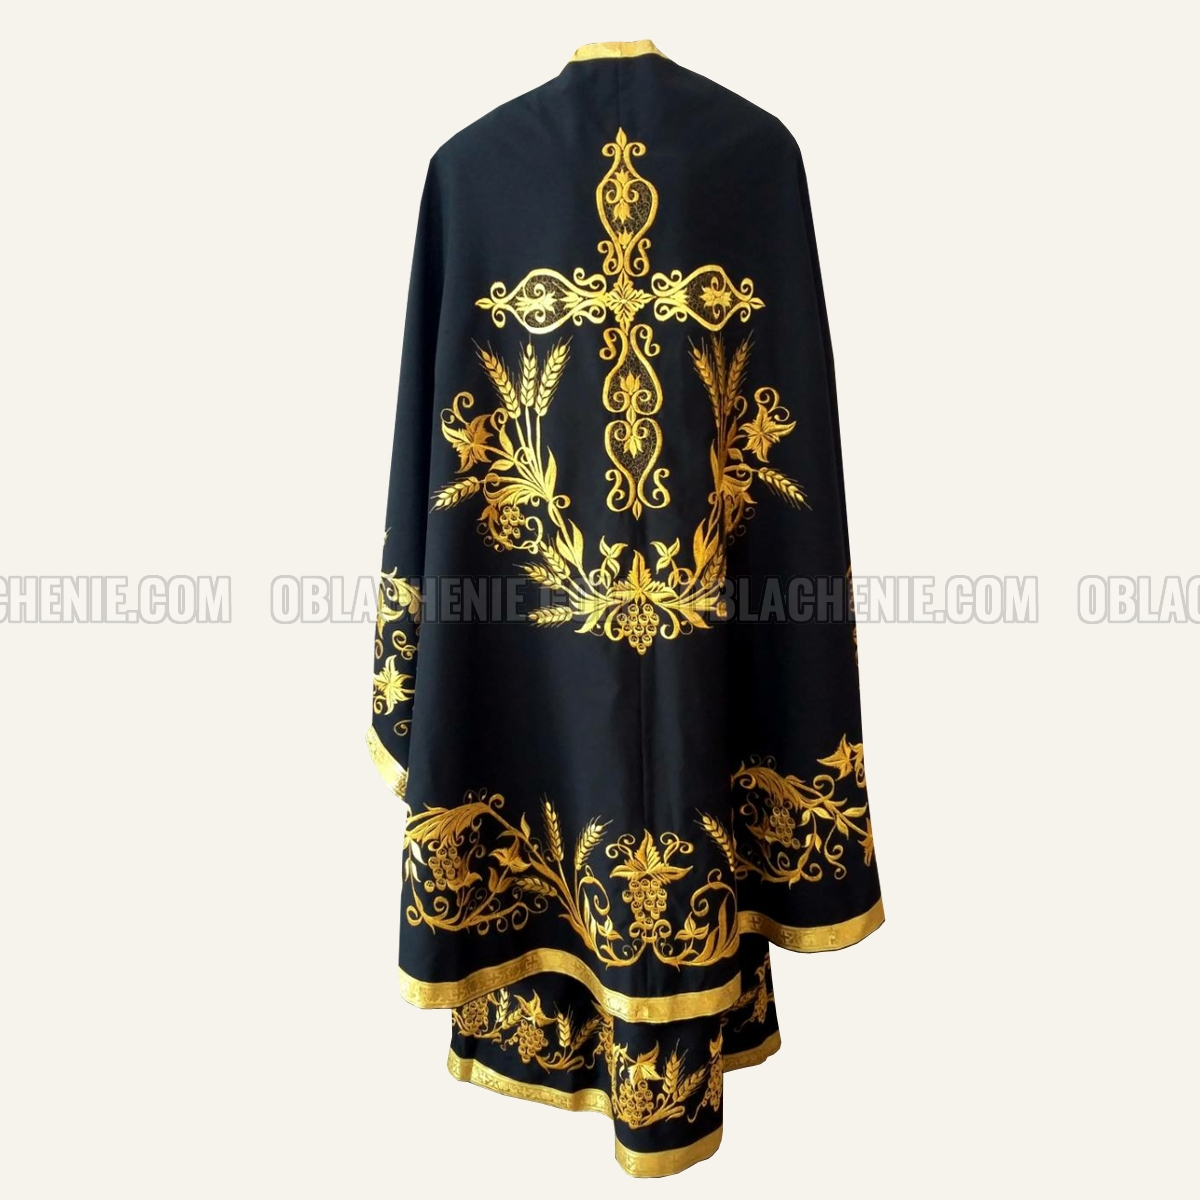 Embroidered priest's vestments 10245